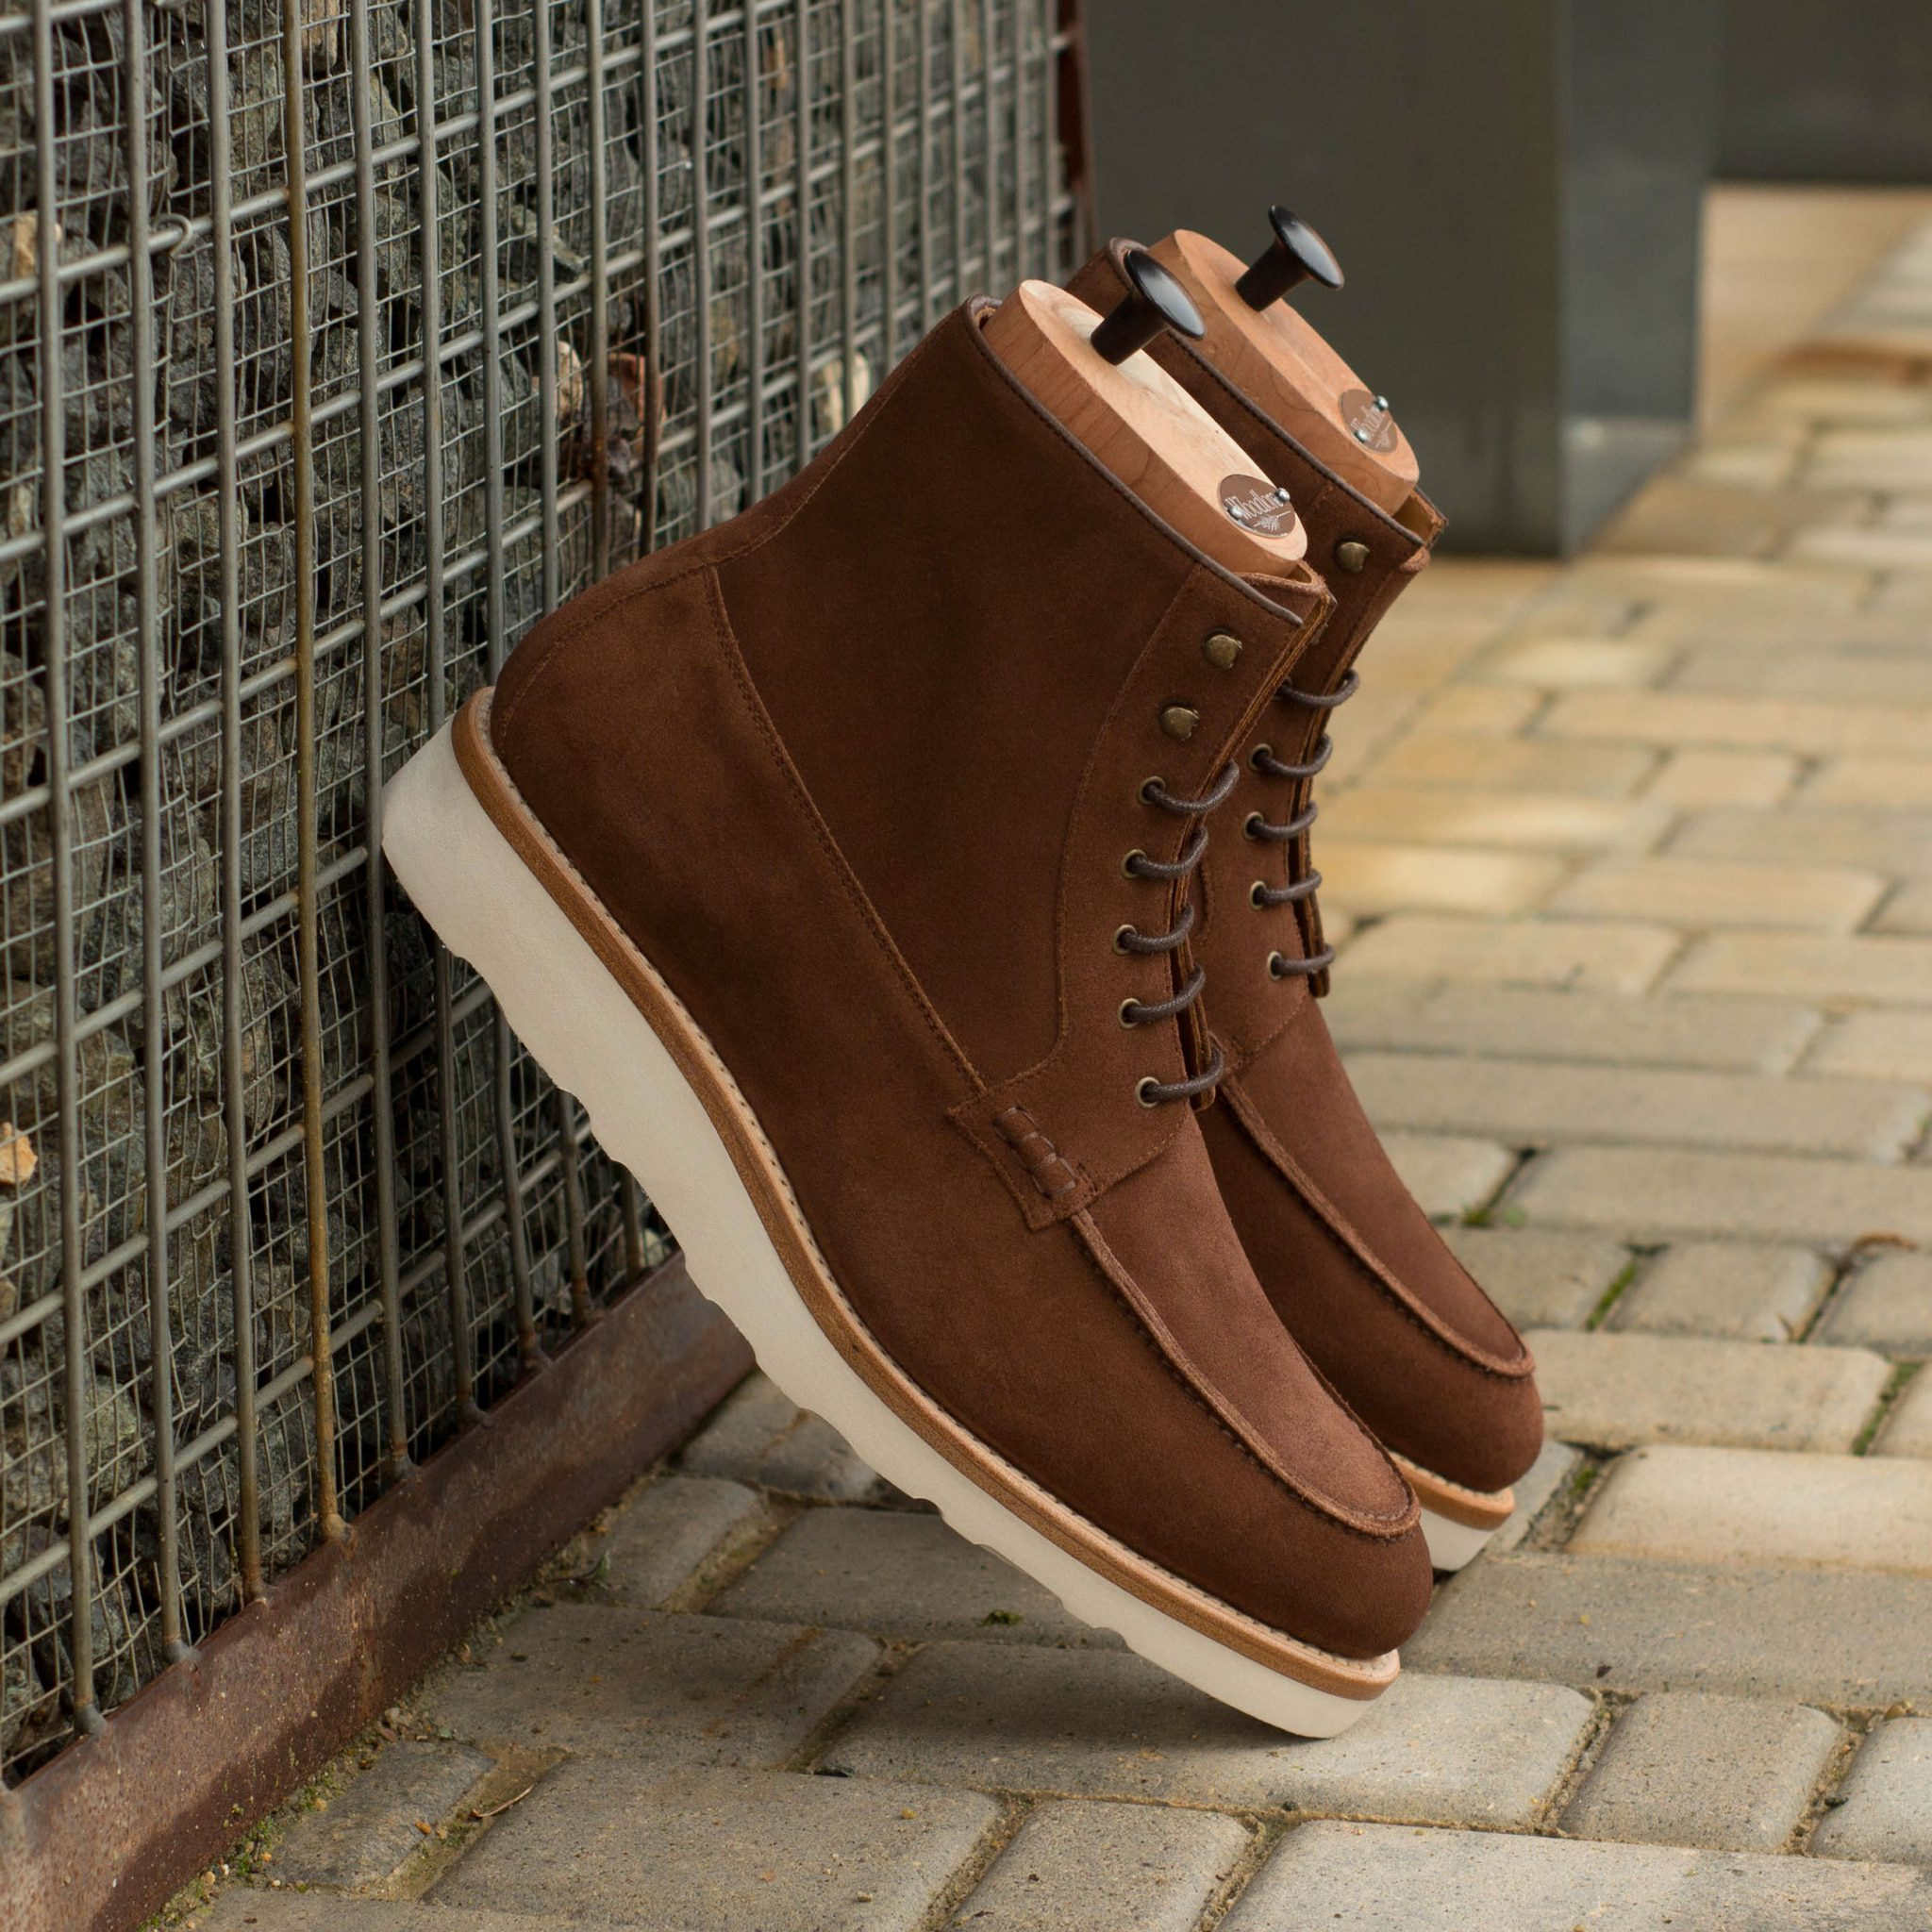 Custom Goodyear Welt Moc Boot in Medium Brown Luxe Suede with Medium Brown Box Calf